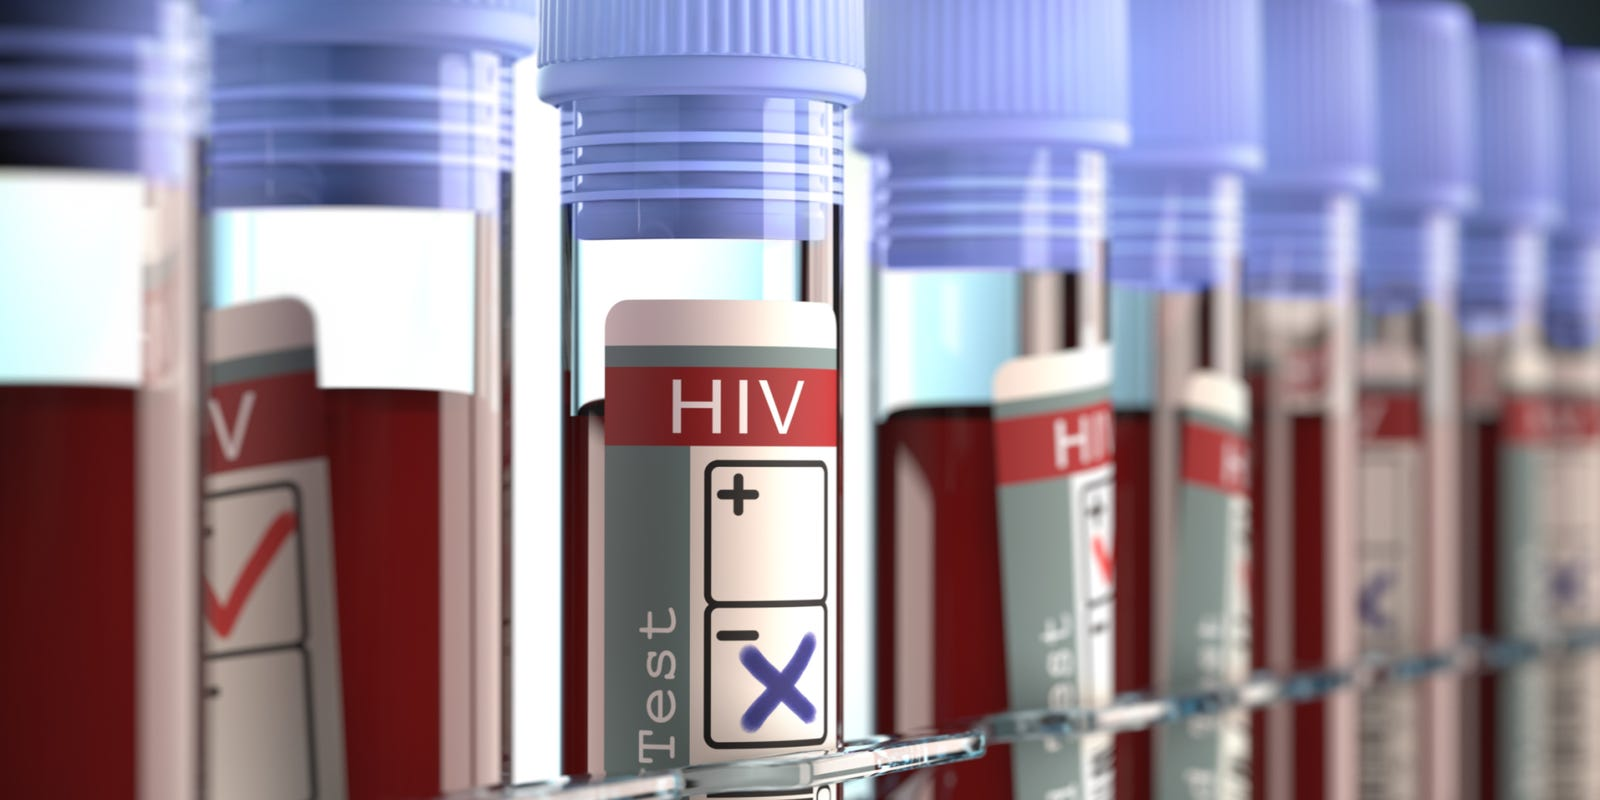 City logo used in fake flyer claiming woman knowingly spread HIV